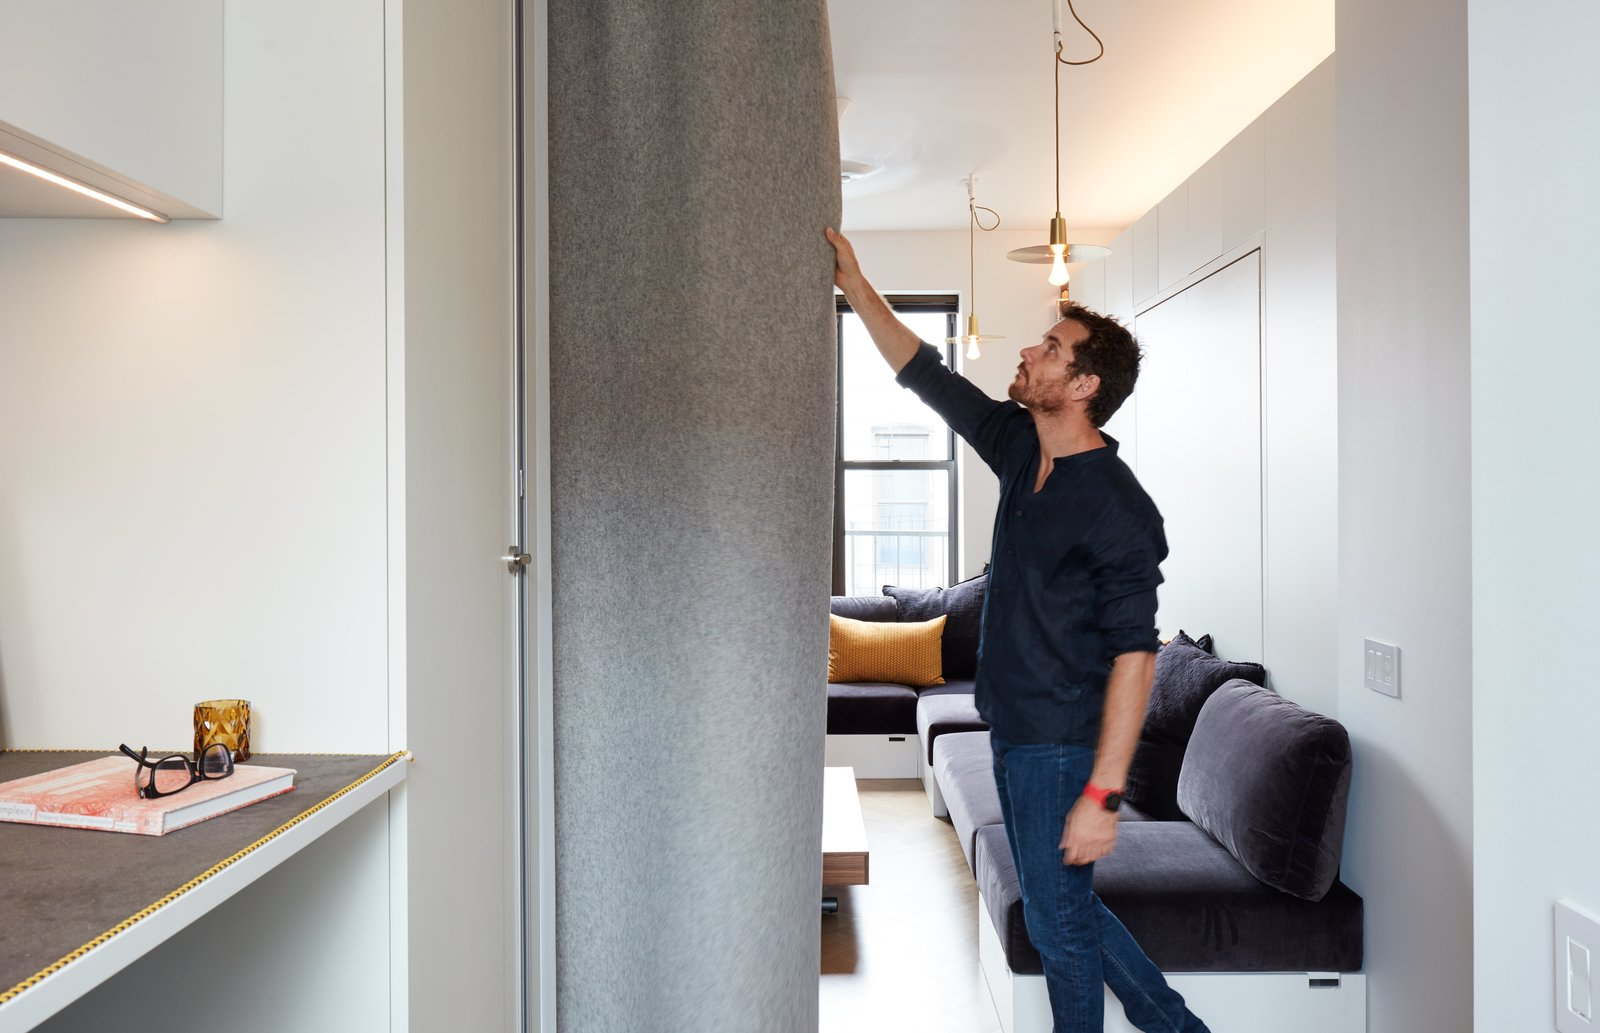 Graham Hill, a sustainability advocate whose TED talks have delved into the benefits of living small, put his own lessons into practice at his 350-square-foot apartment, which he shares with his partner and two dogs. Quick transitions, like drawing the FilzFelt curtain, convert the living space into a bedroom. Tagged: Living Room, Sofa, Sectional, Storage, Bookcase, Shelves, Pendant Lighting, Coffee Tables, Ceiling Lighting, and Light Hardwood Floor.  Photo 2 of 16 in At His 350-Square-Foot Apartment, Small Space Champion Graham Hill Practices What He Preaches